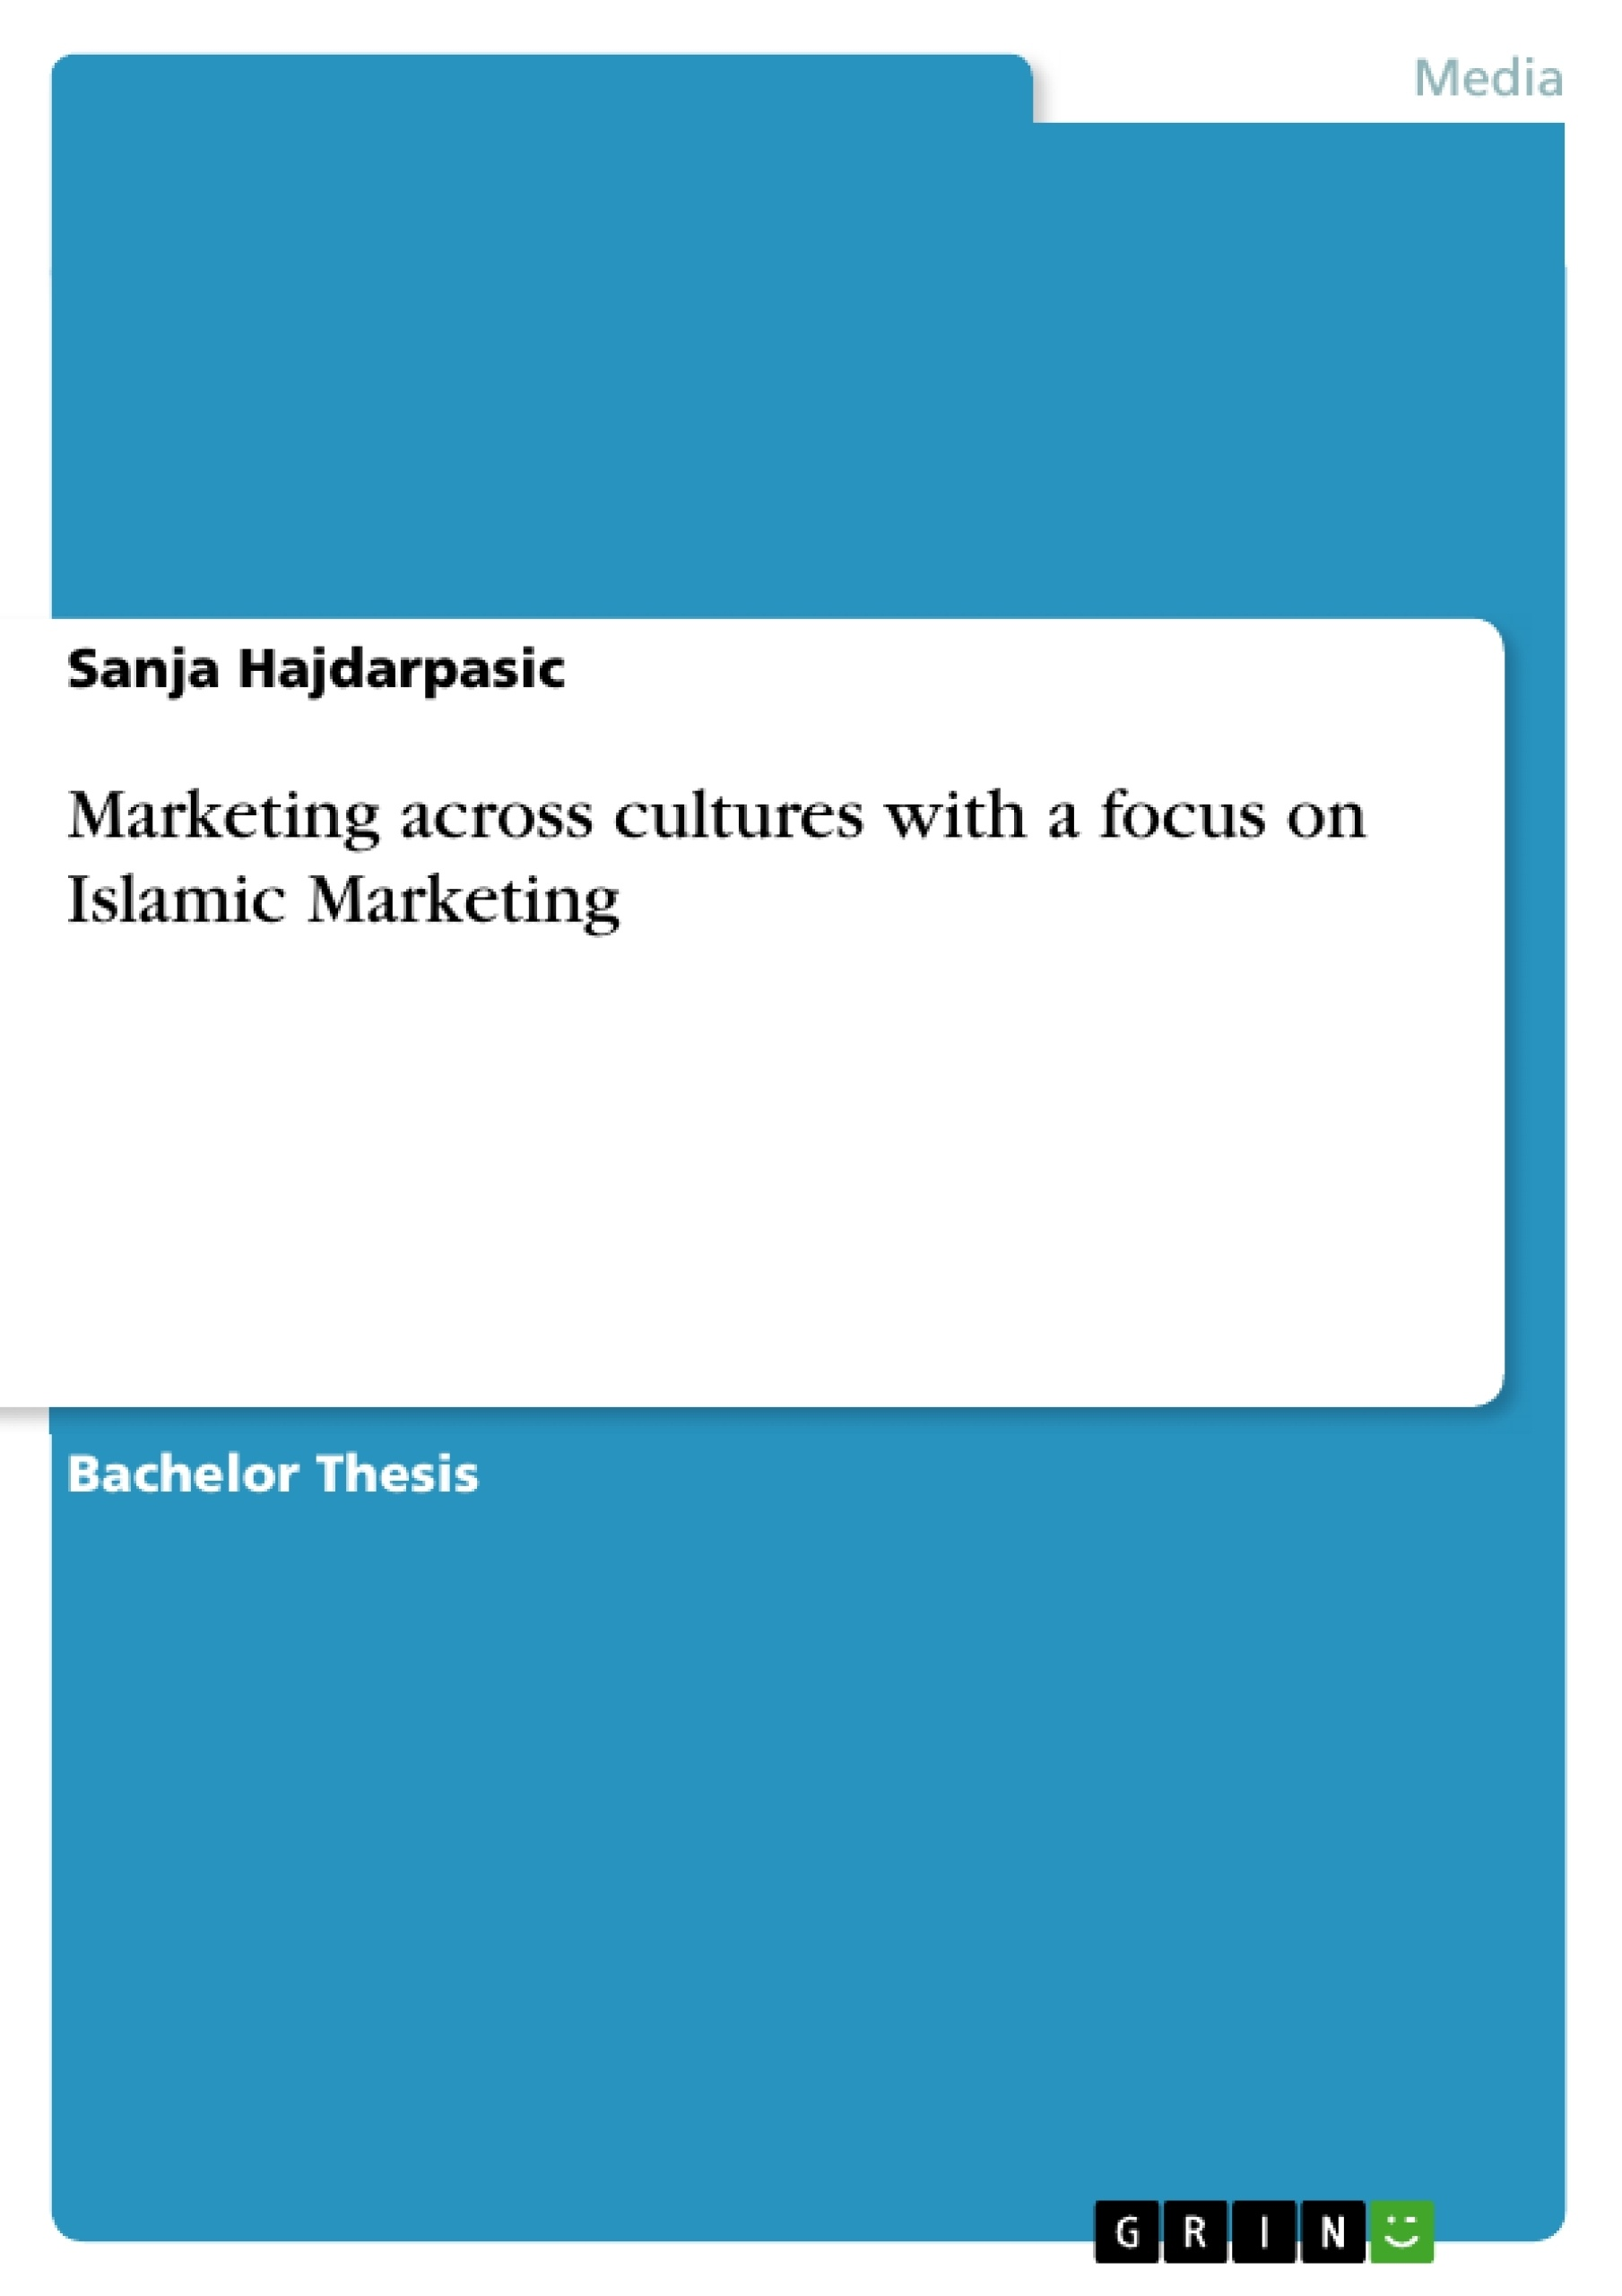 20+ GRIN   Marketing across cultures with a focus on Islamic Marketing Fotos